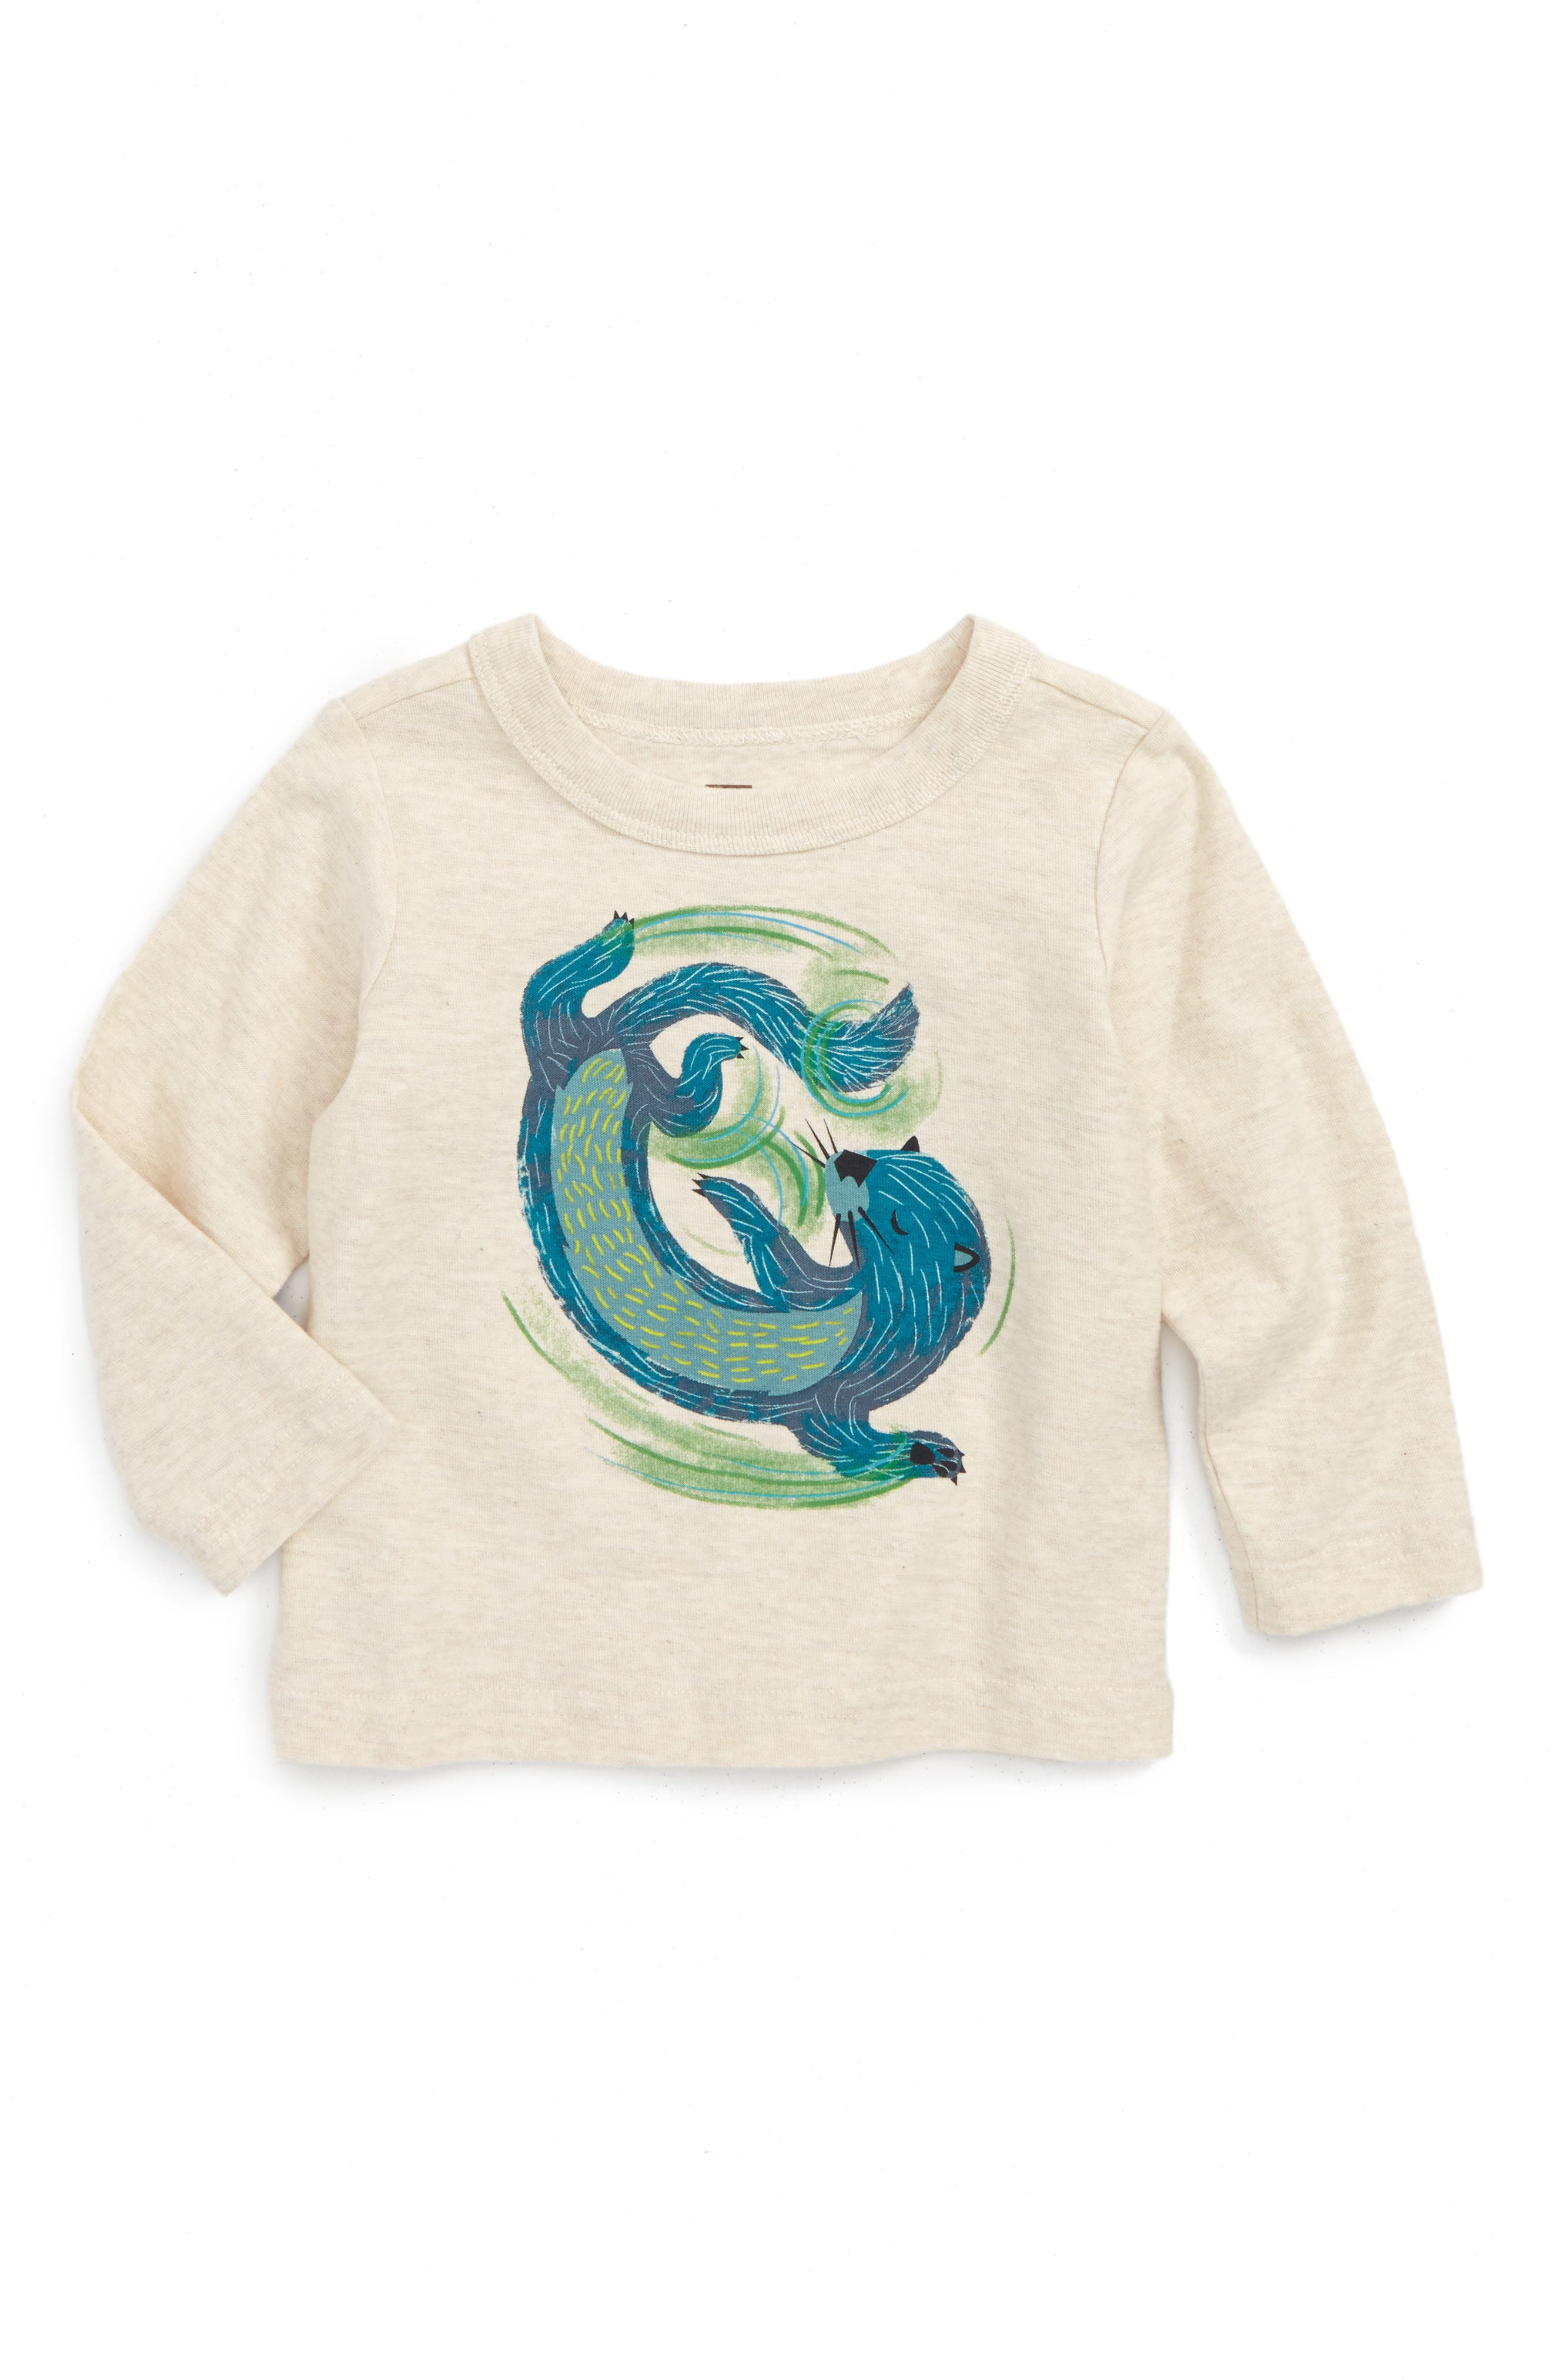 Main Image - Tea Collection River Otter Graphic T-Shirt (Baby Boys)